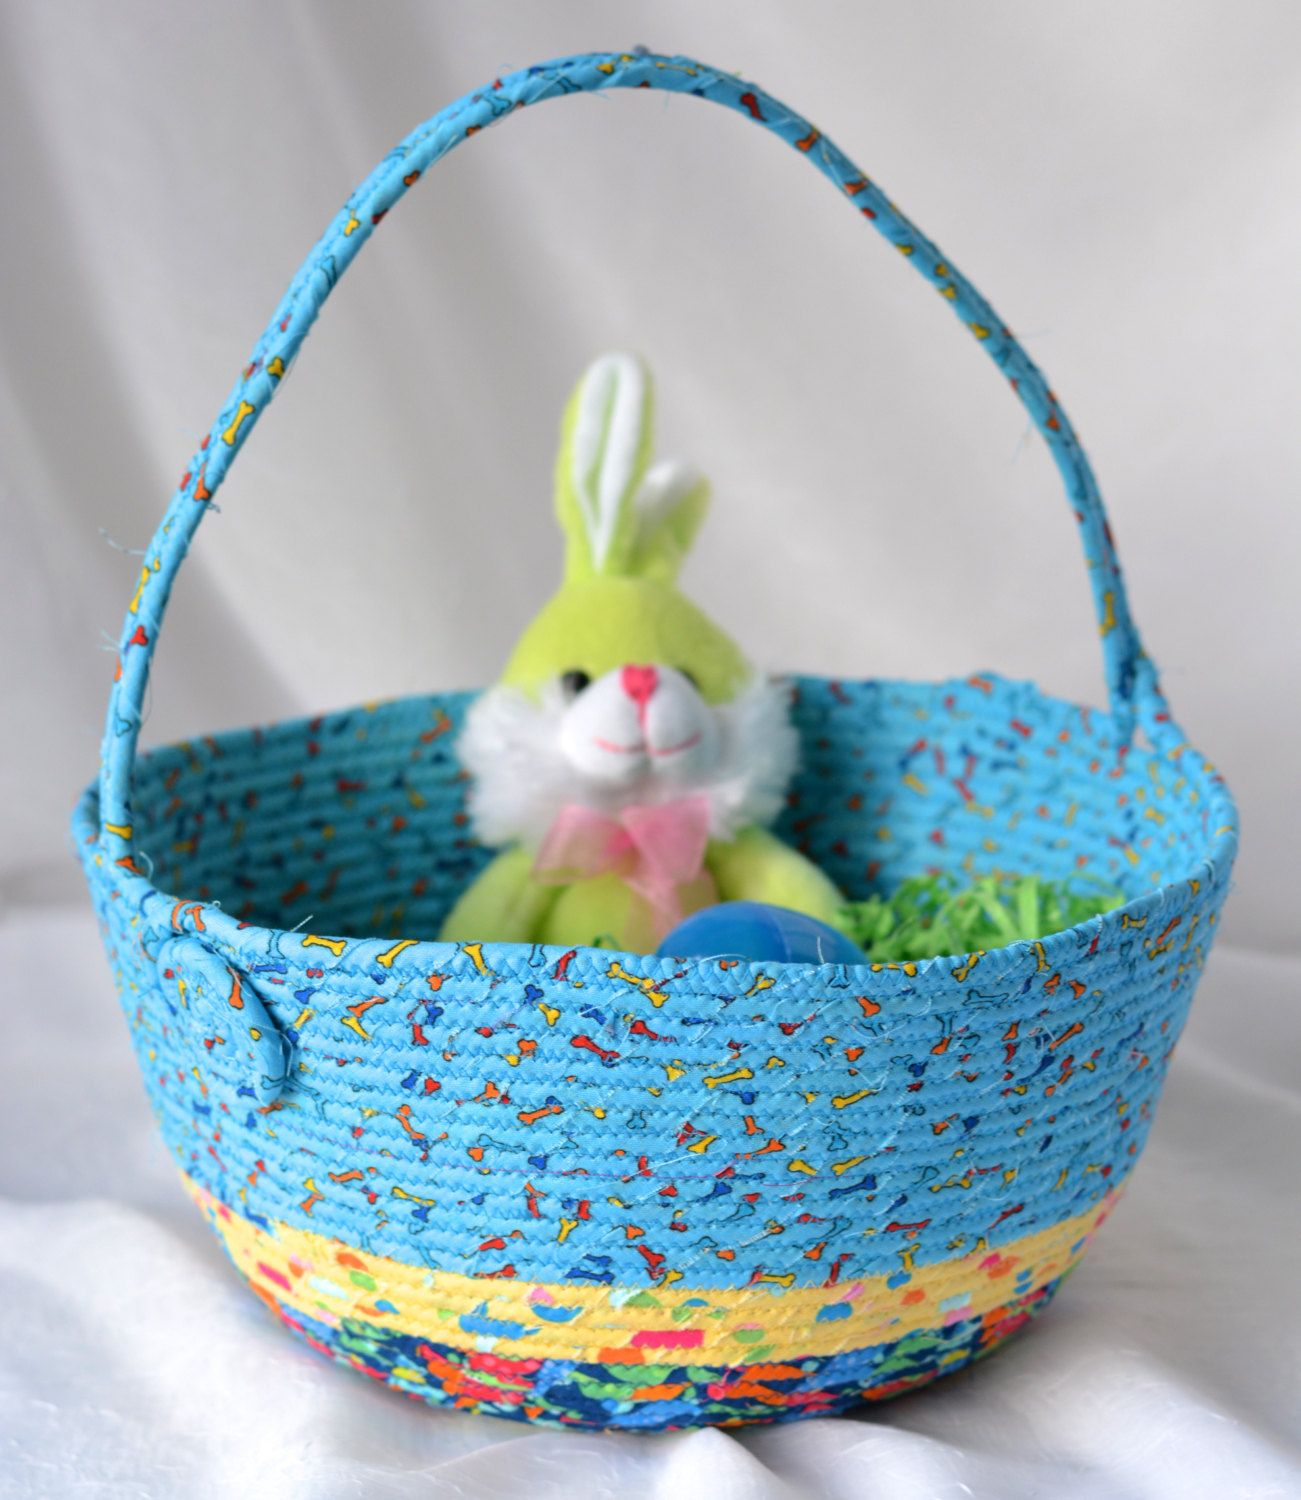 I handmade this fun blue easter basket handmade by me fun i handmade this fun blue easter basket fun boy easter basket lego storage easter egg hunt bucket jelly bean bucket by wexfordtreasures on etsy negle Image collections